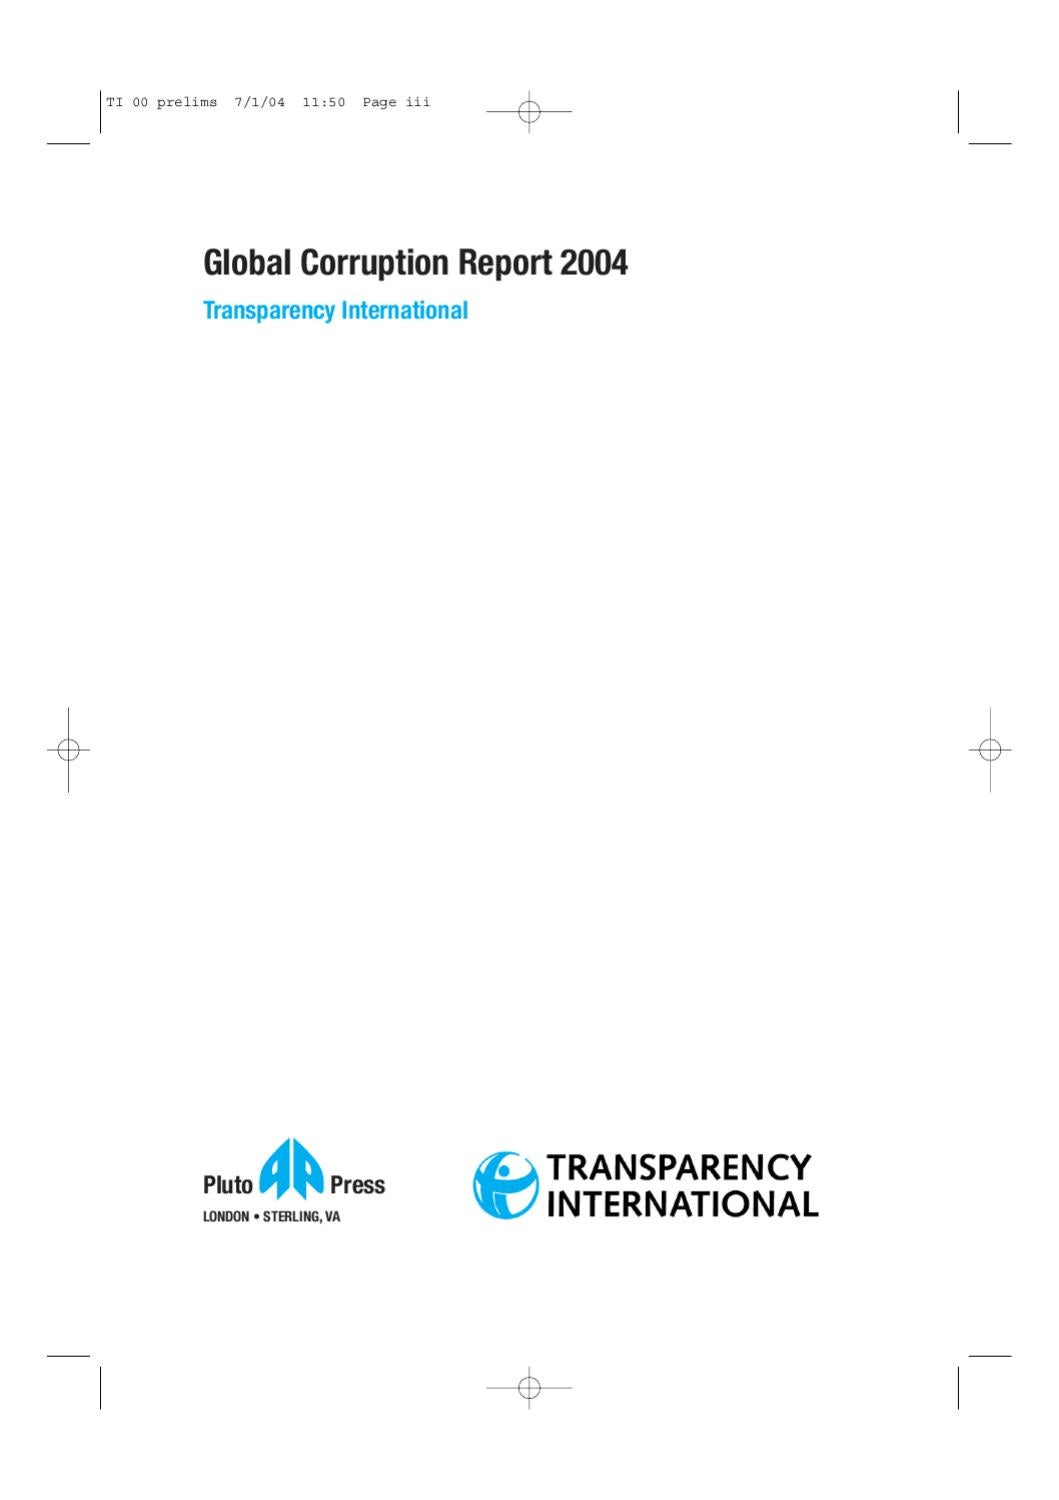 Global Corruption Report 2004 Political By Transparency Sterling Fuse Box 2003 International Issuu